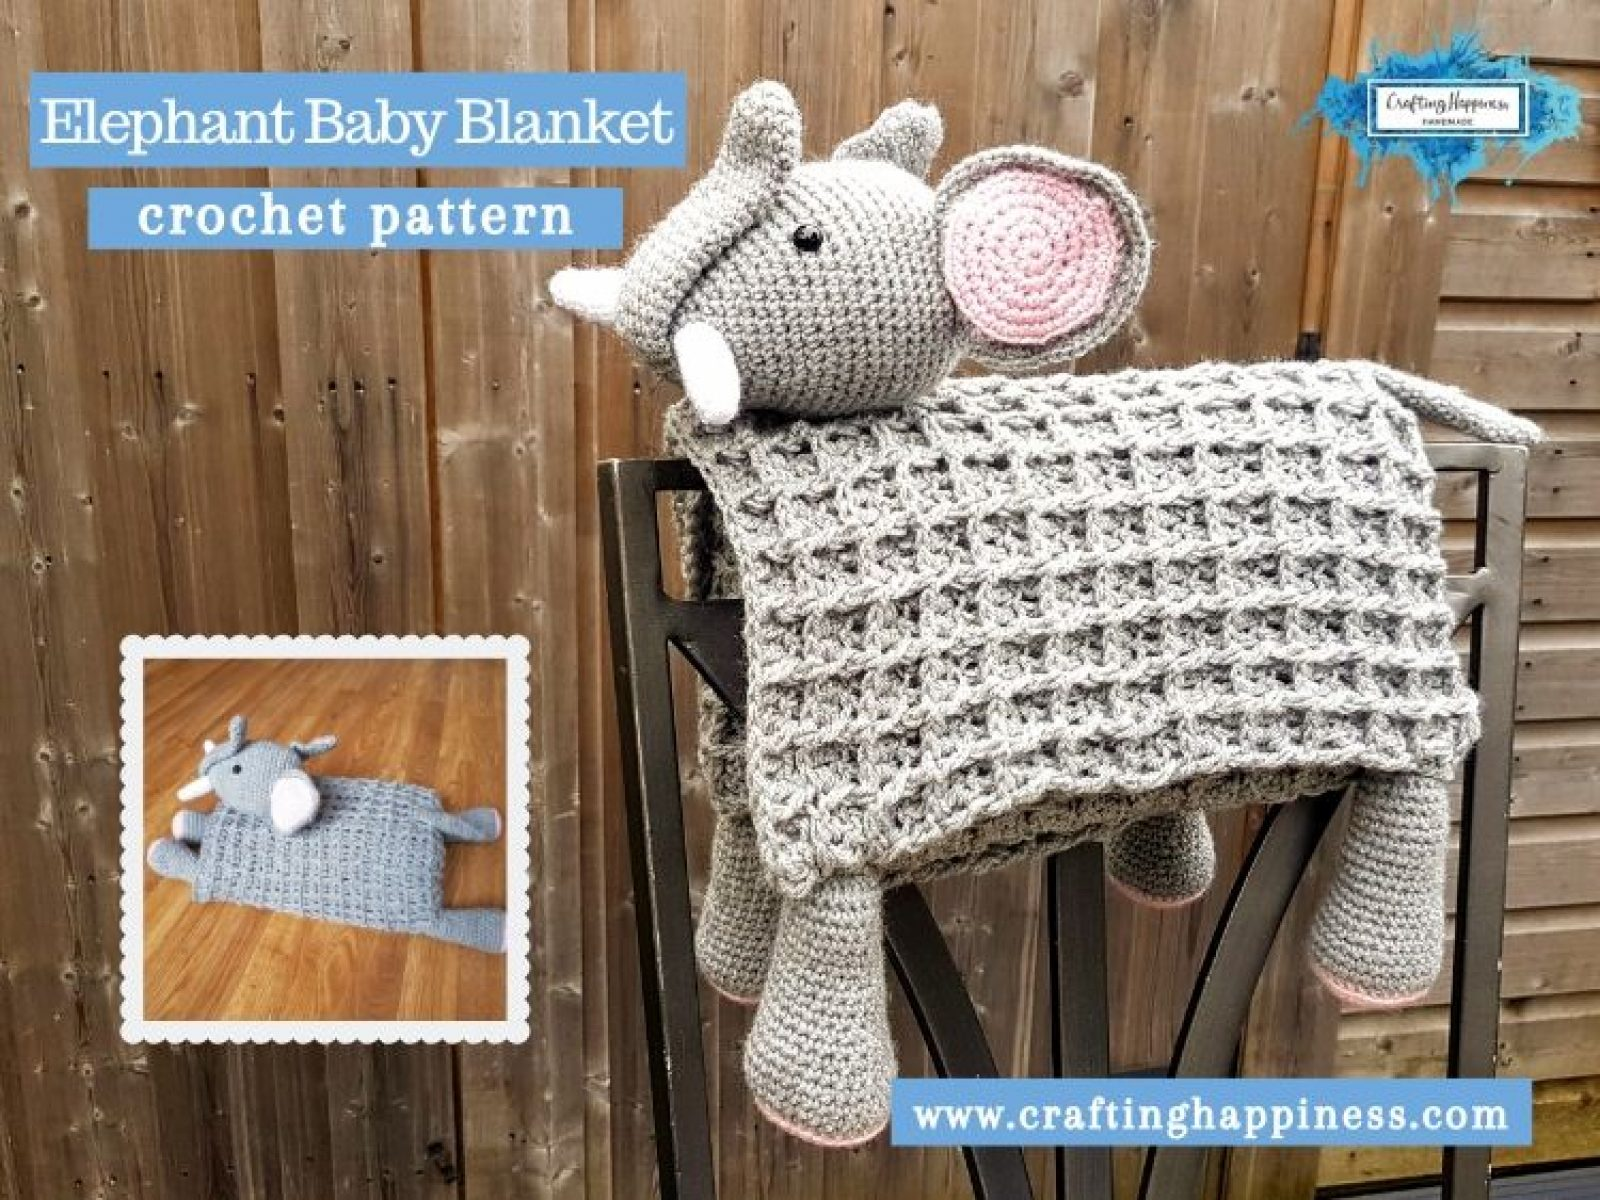 Elephant Baby Blanket by Crafting Happiness FACEBOOK POSTER